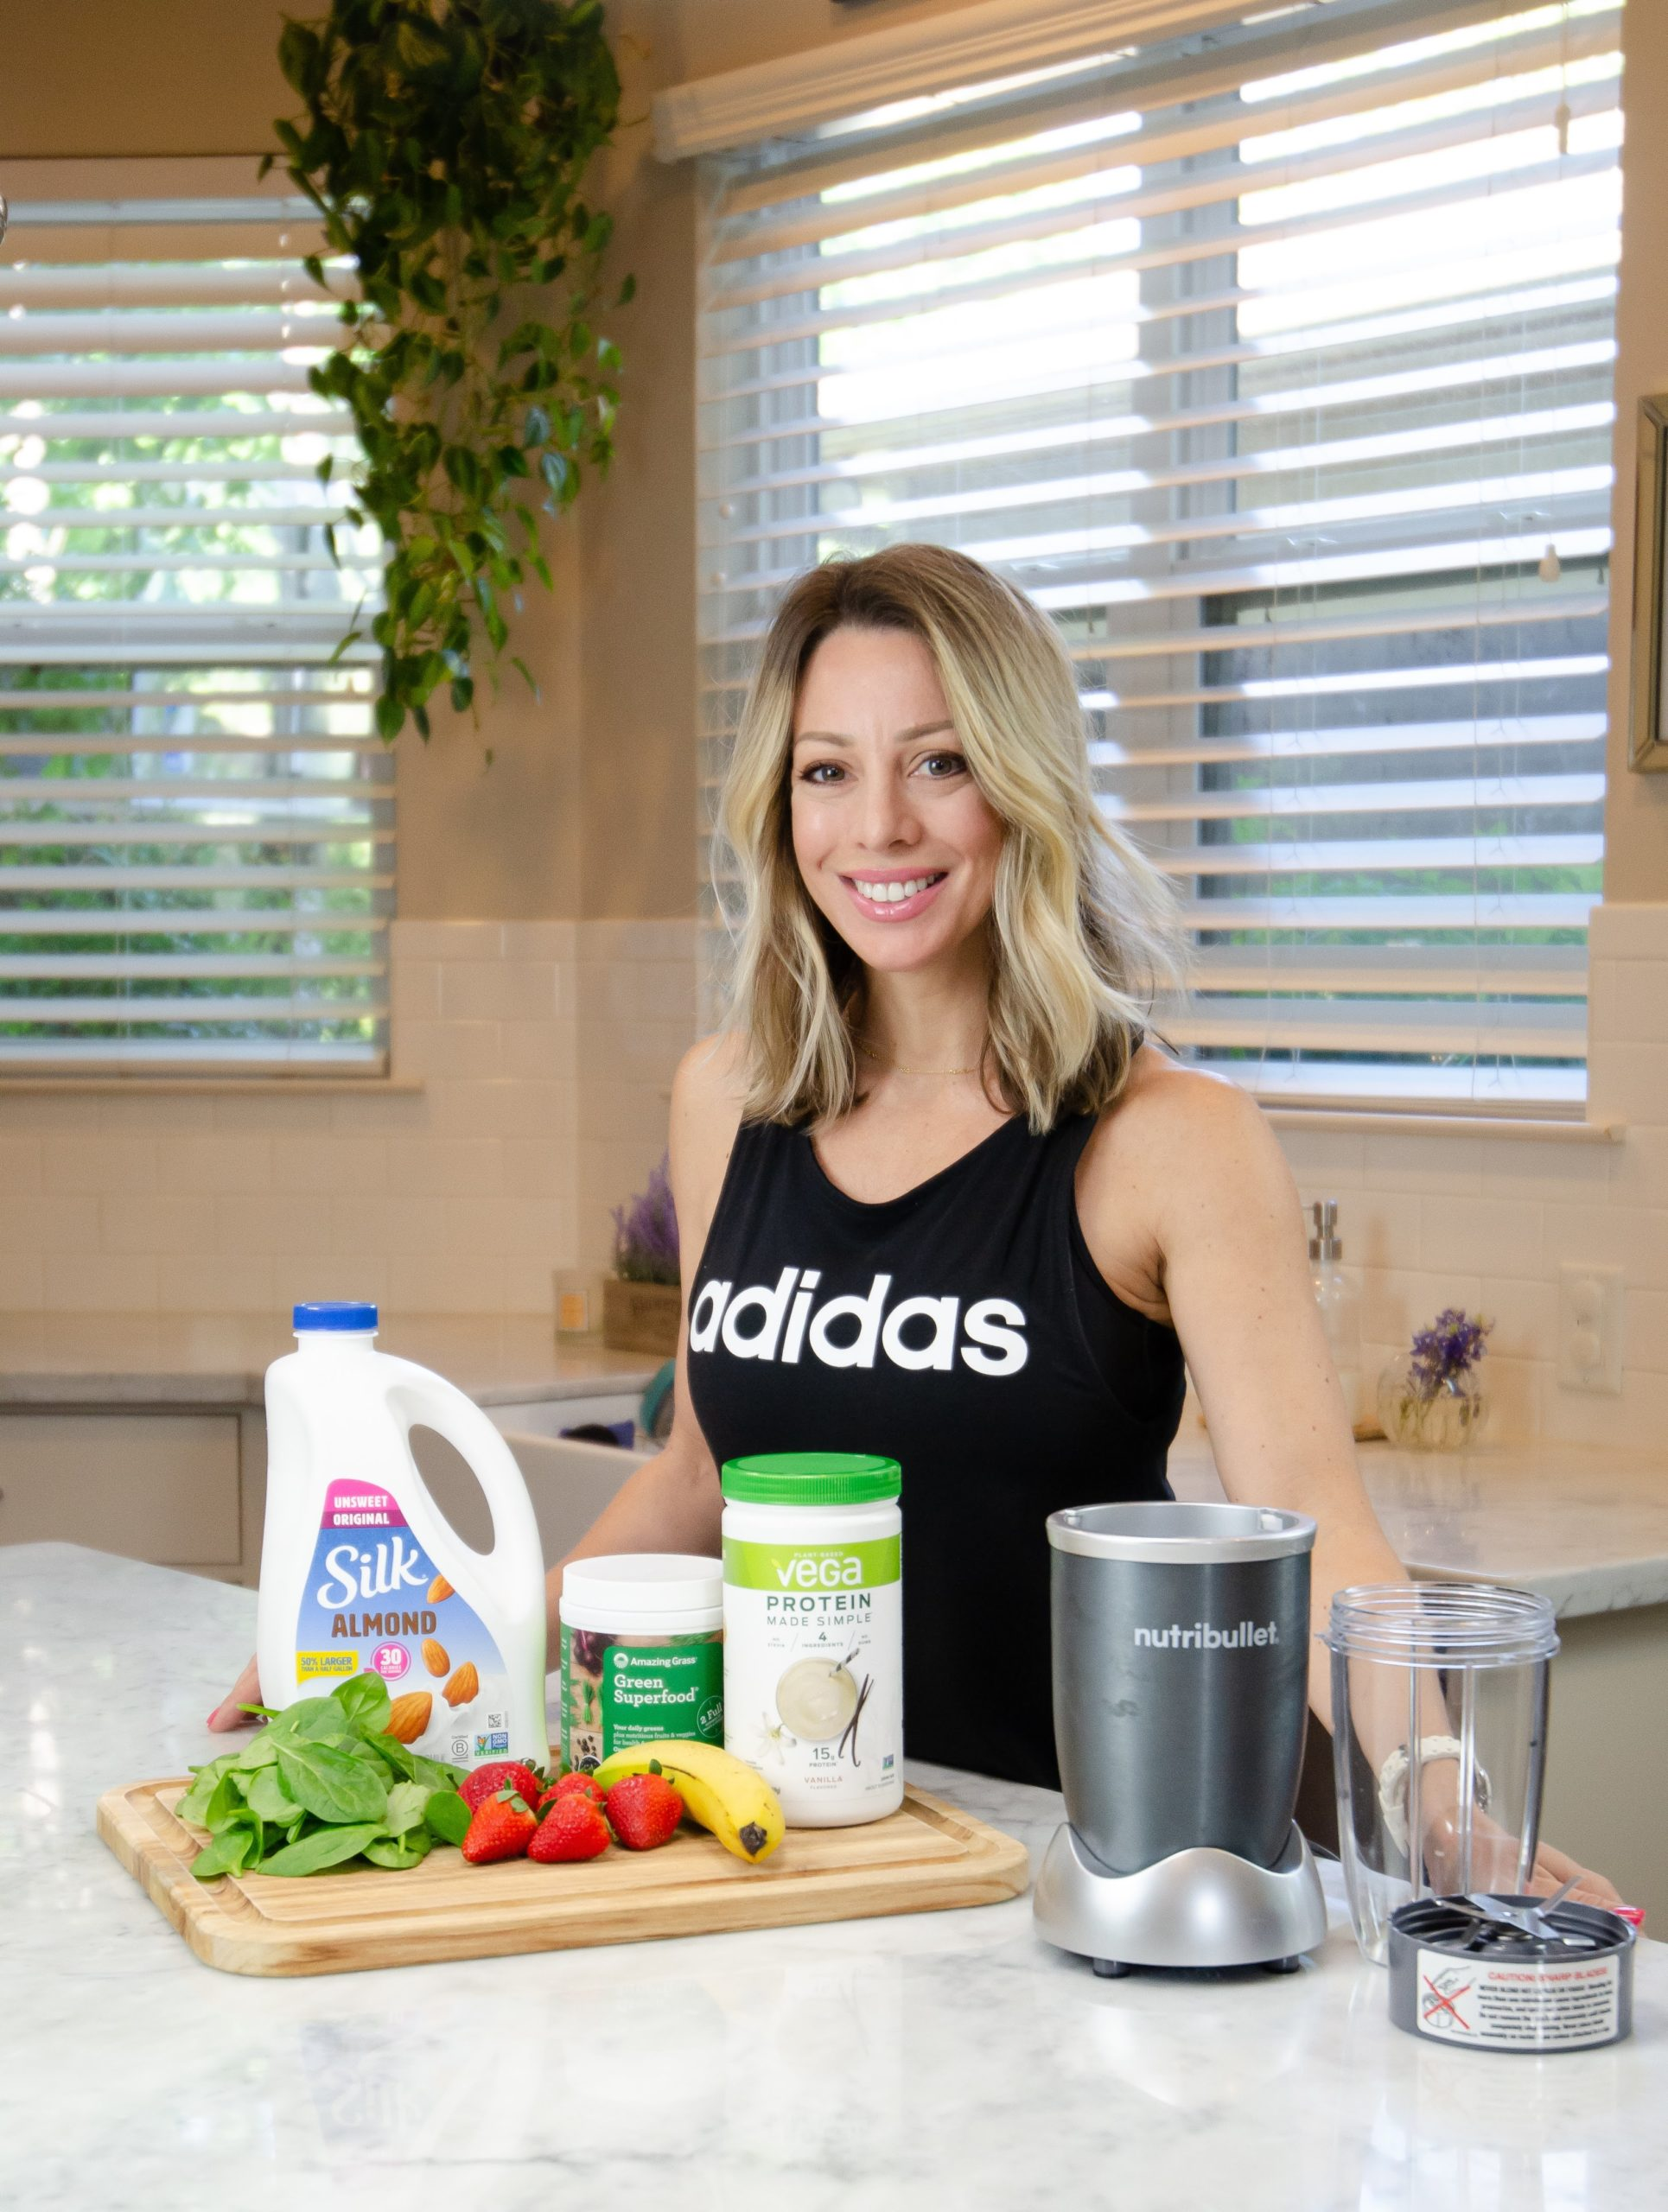 Adidas Workout top, Nutribullet